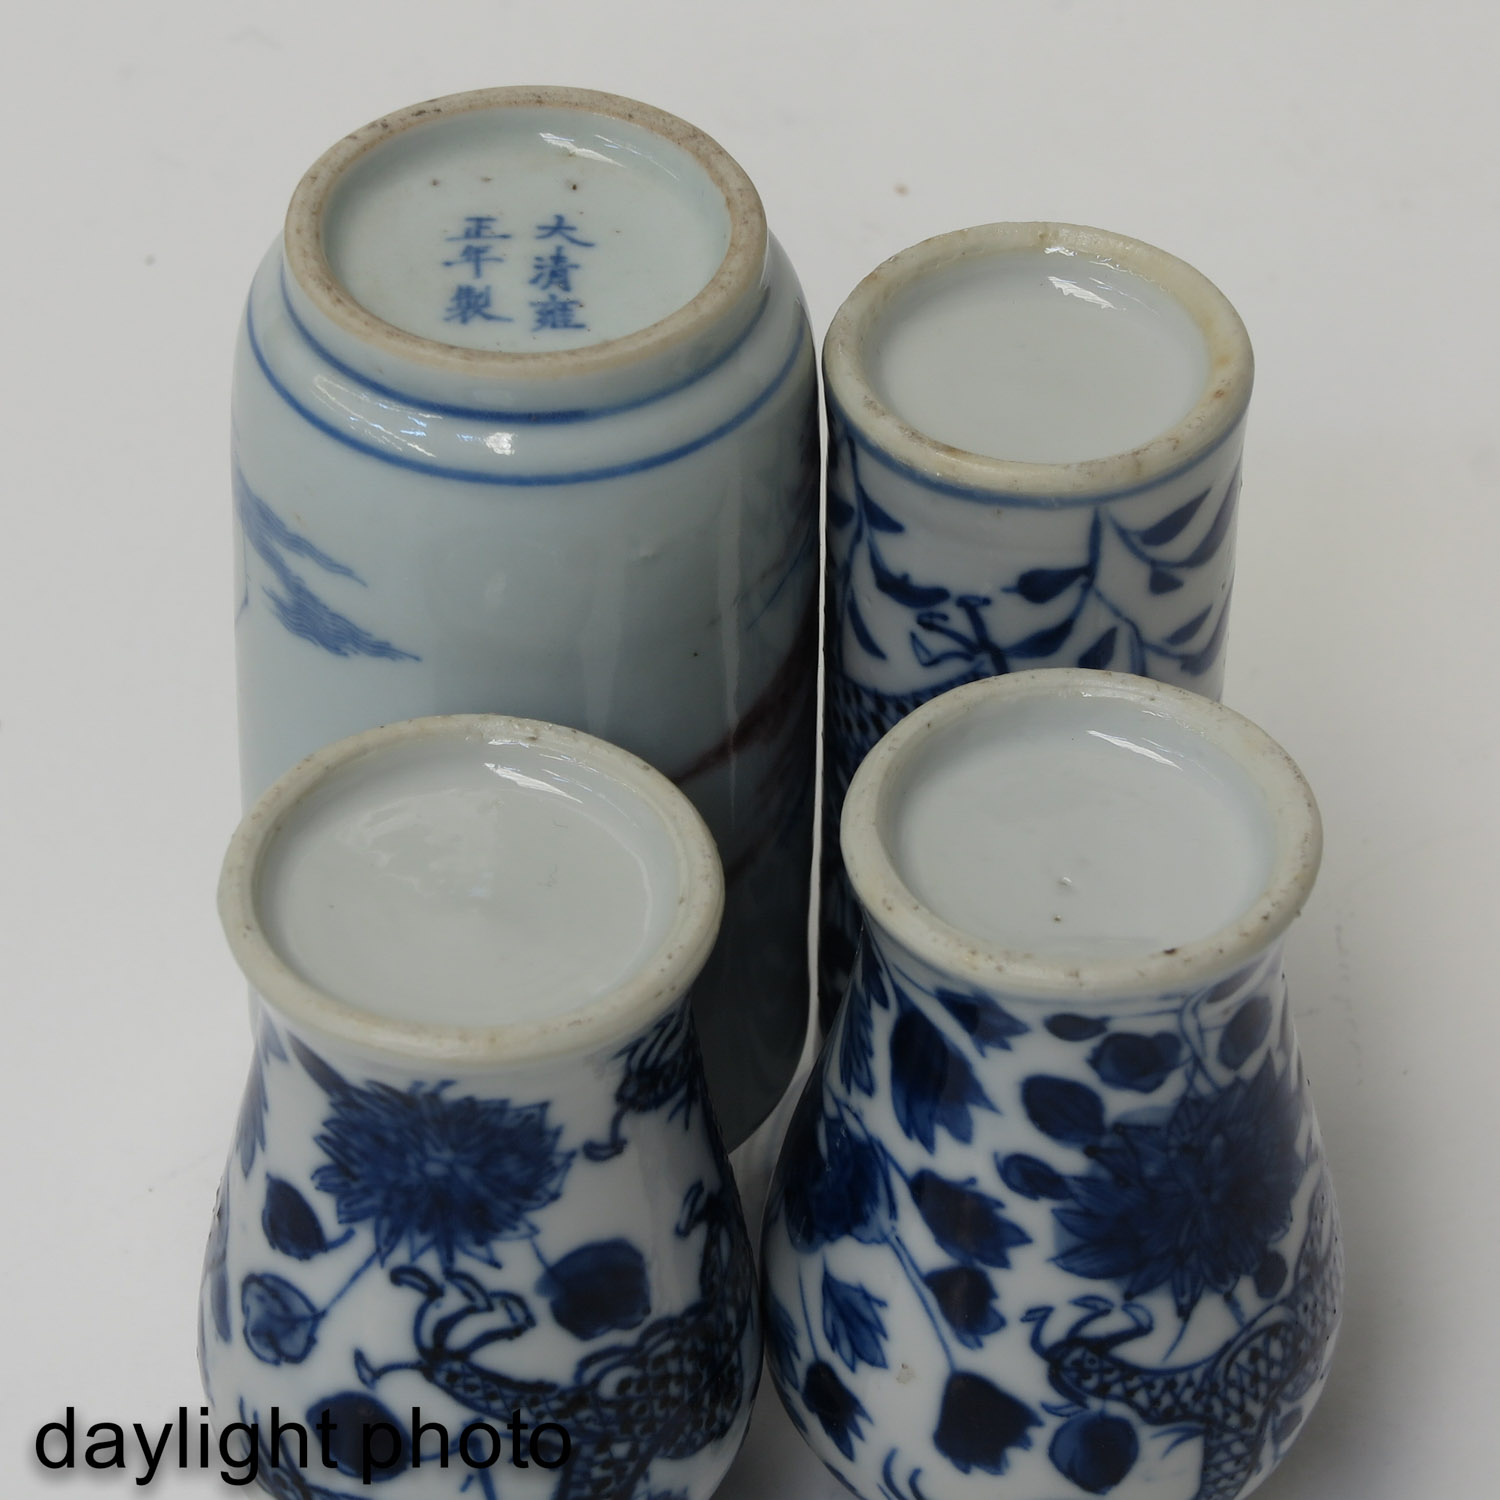 A Collection of 4 Miniature Vases - Image 8 of 10